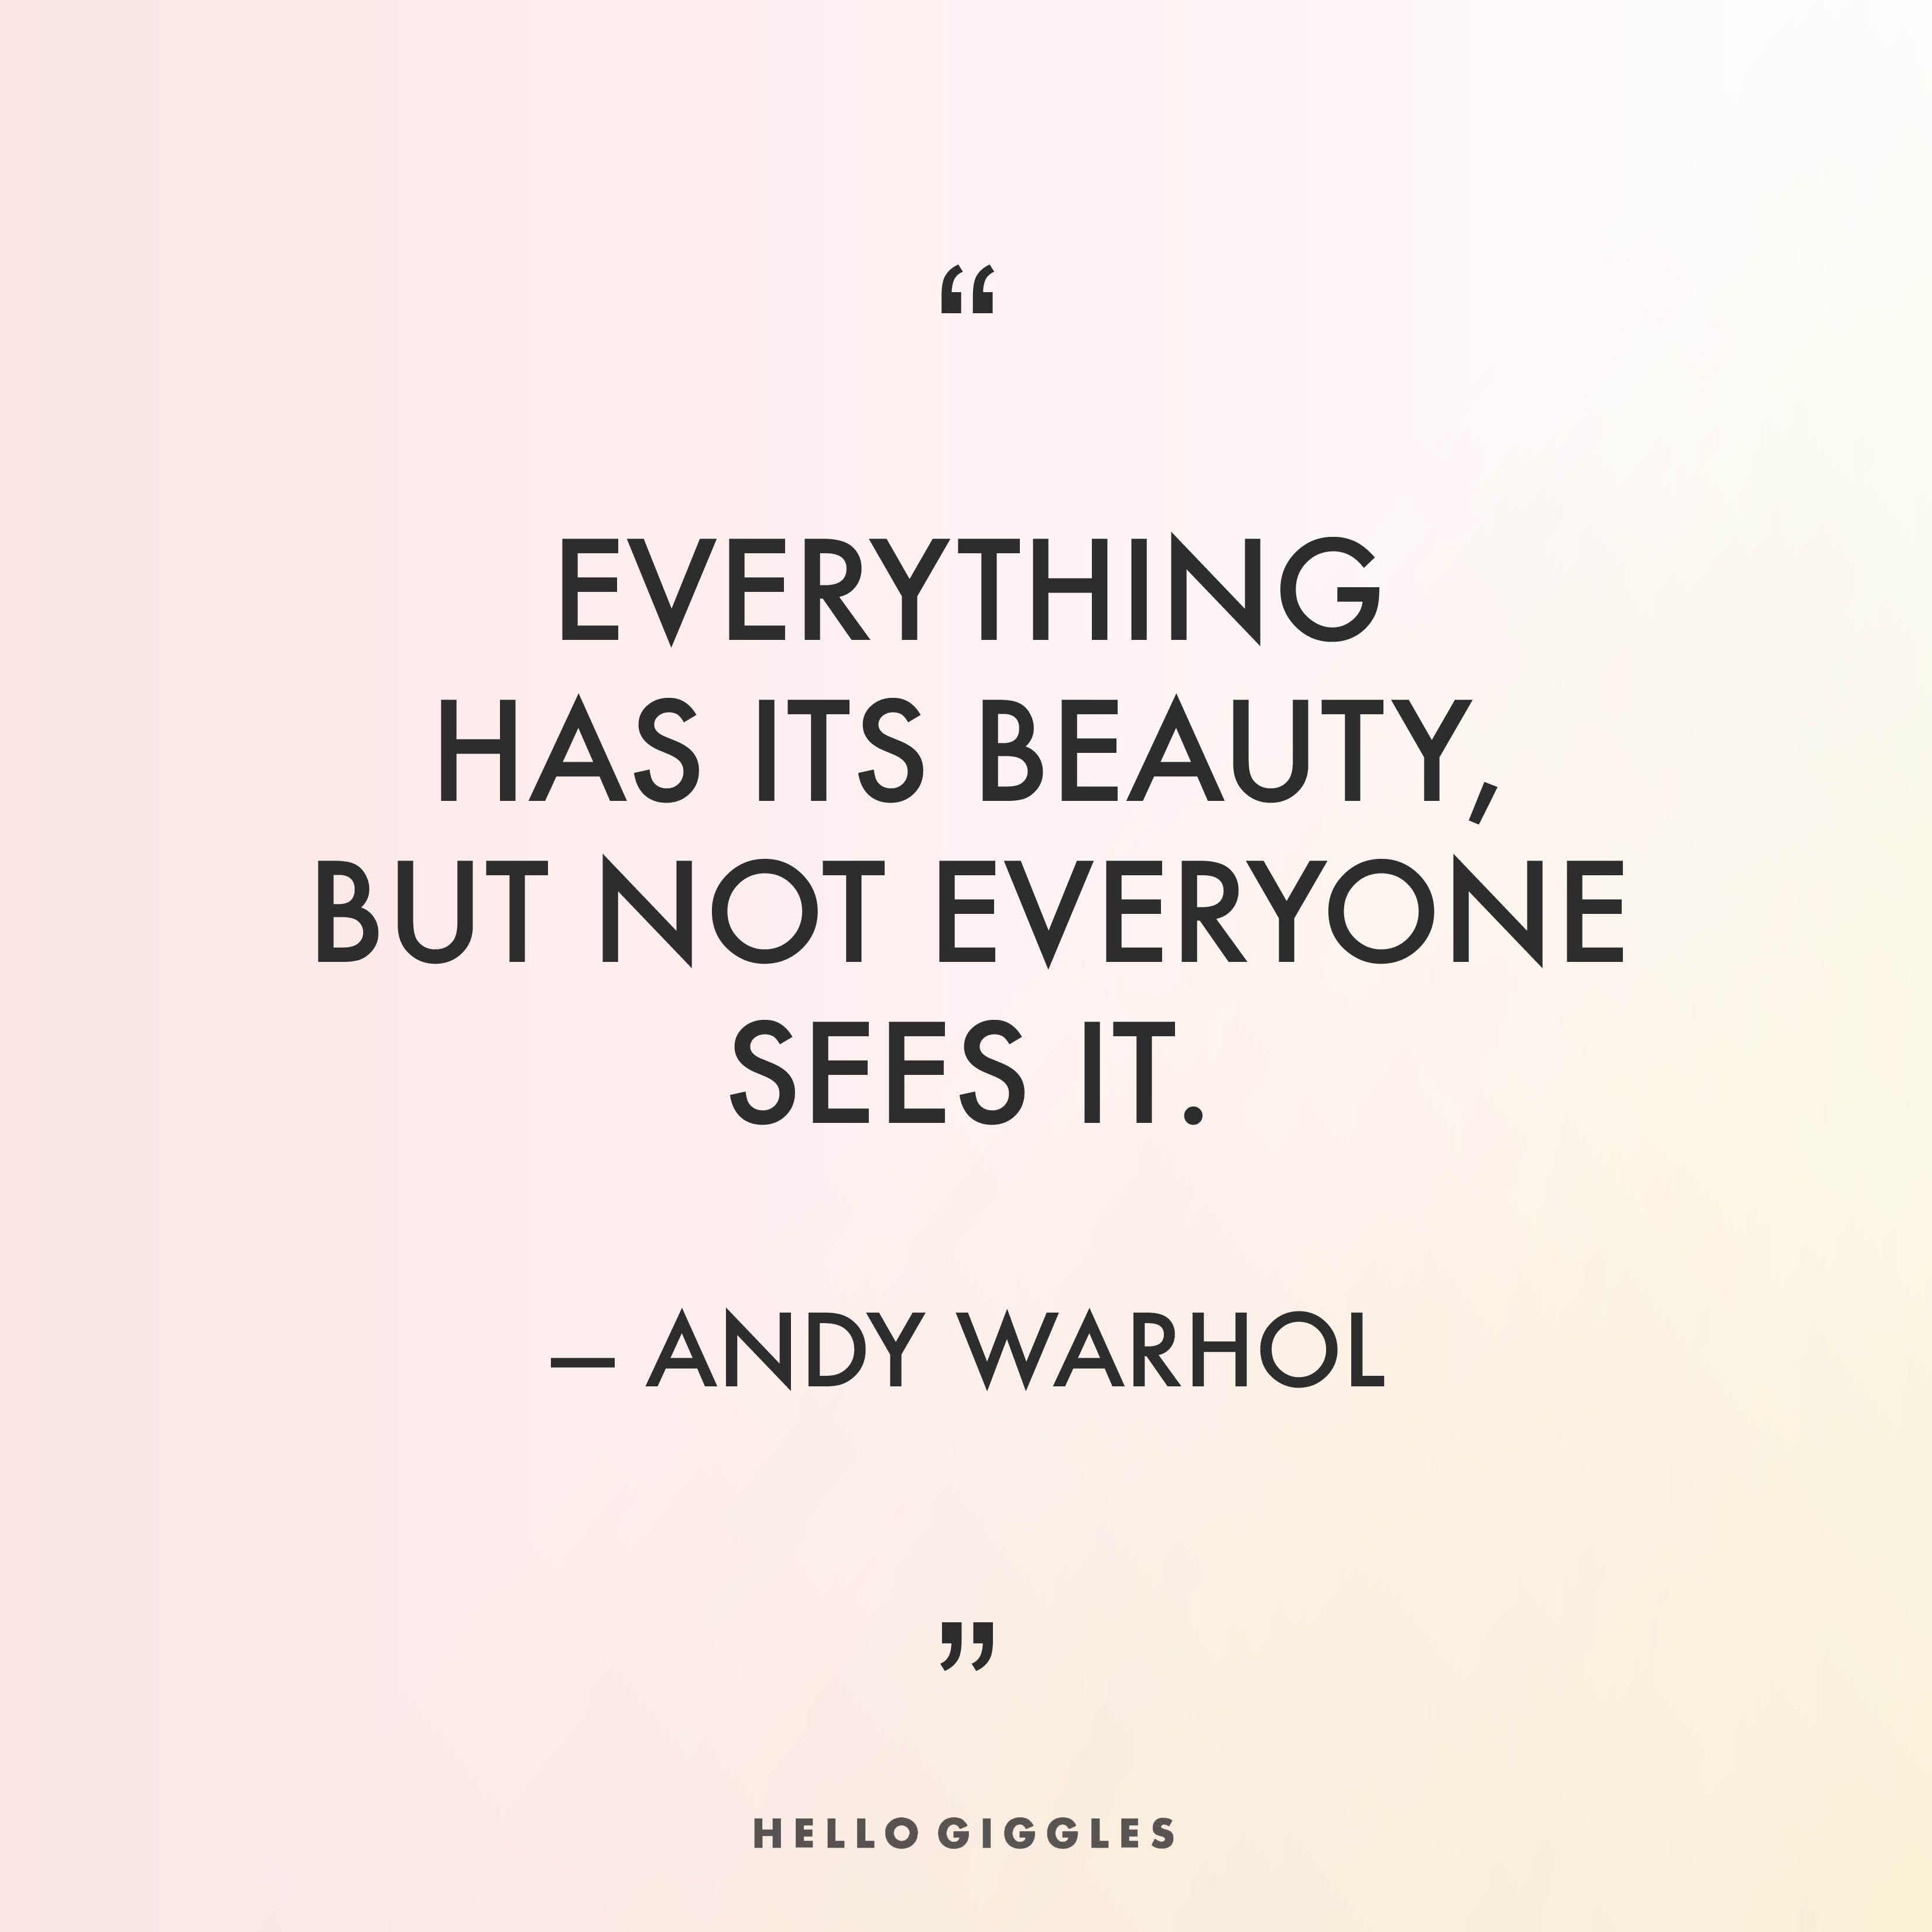 Andy Warhol With Words Of Wisdom Andy Warhol Quotes Andy